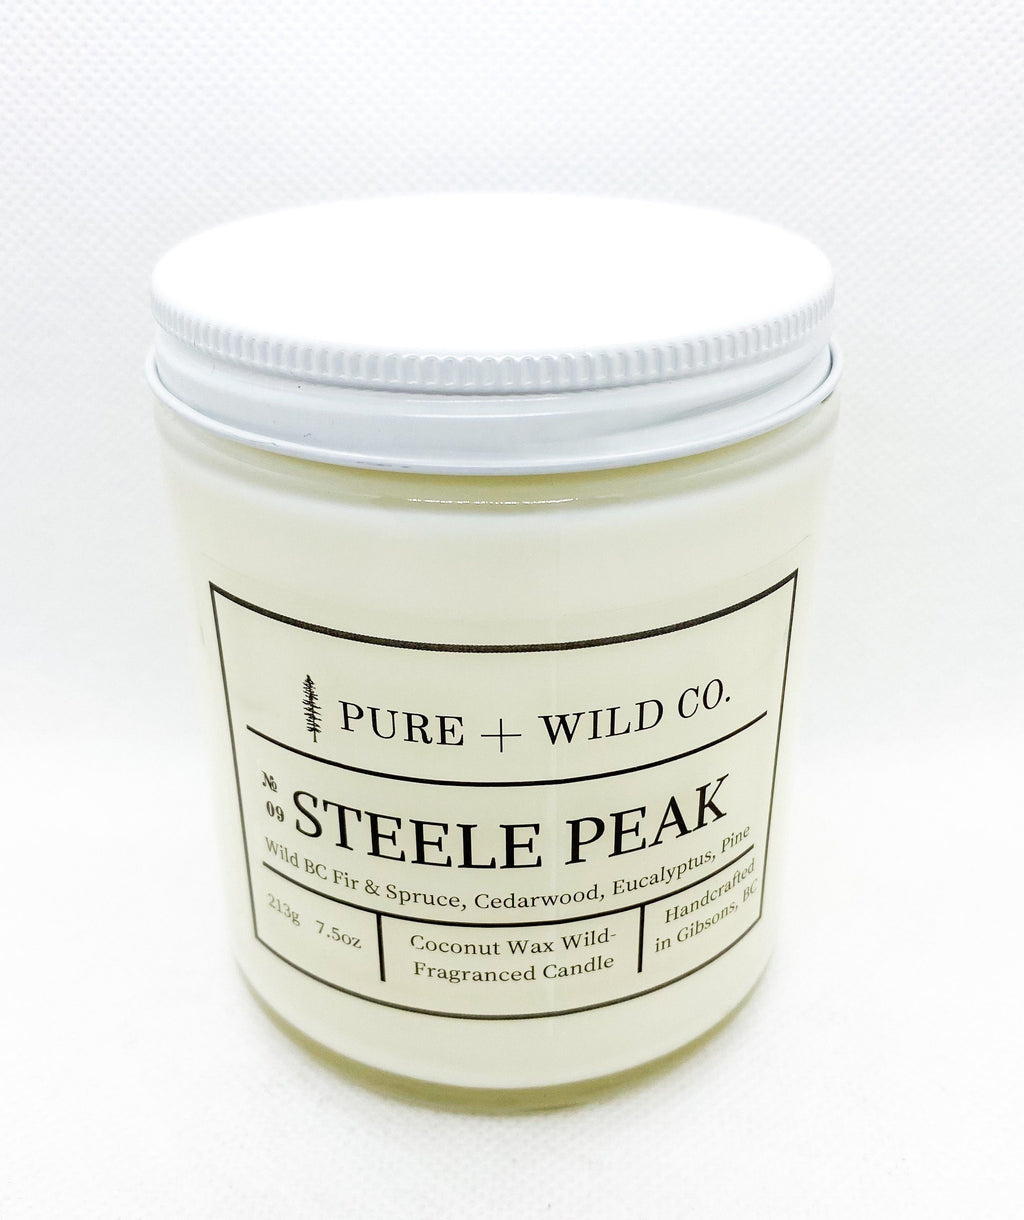 № 09 STEELE PEAK - Fir, Spruce, Cedarwood, Eucalyptus, Pine PURE + WILD CO.